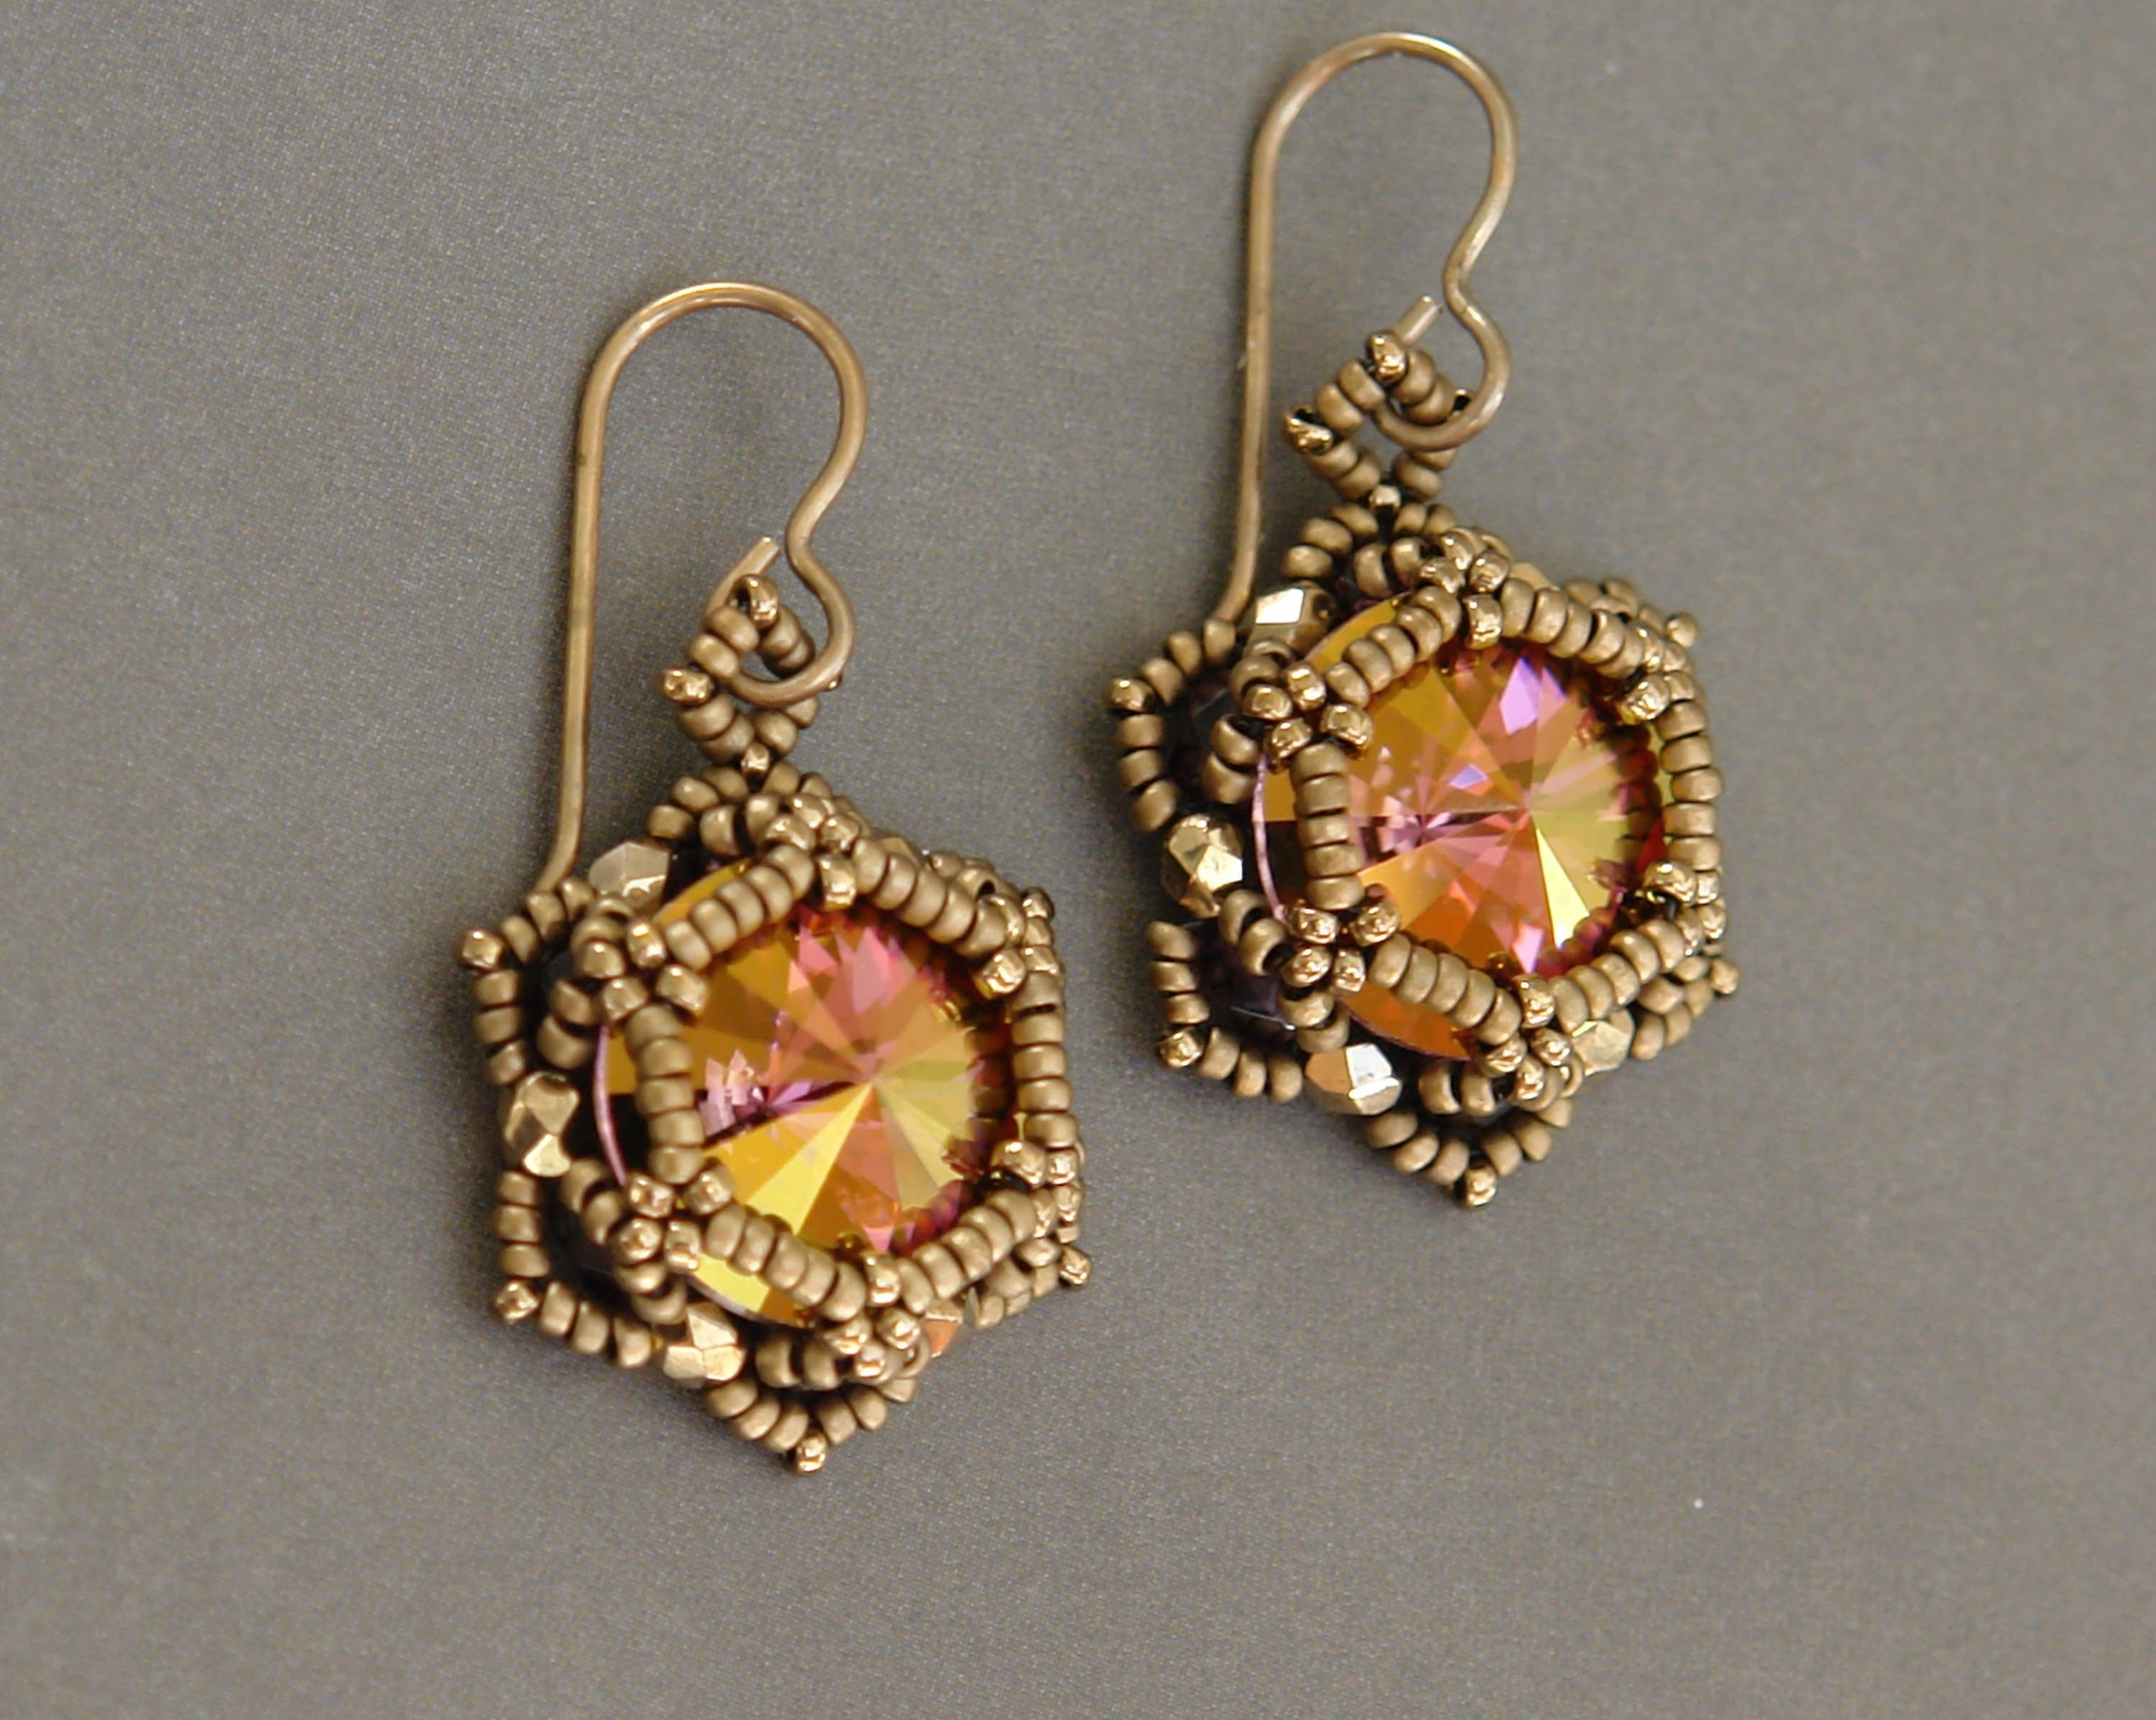 Sidonia's handmade jewelry - Sunset Glare - Beaded Earrings